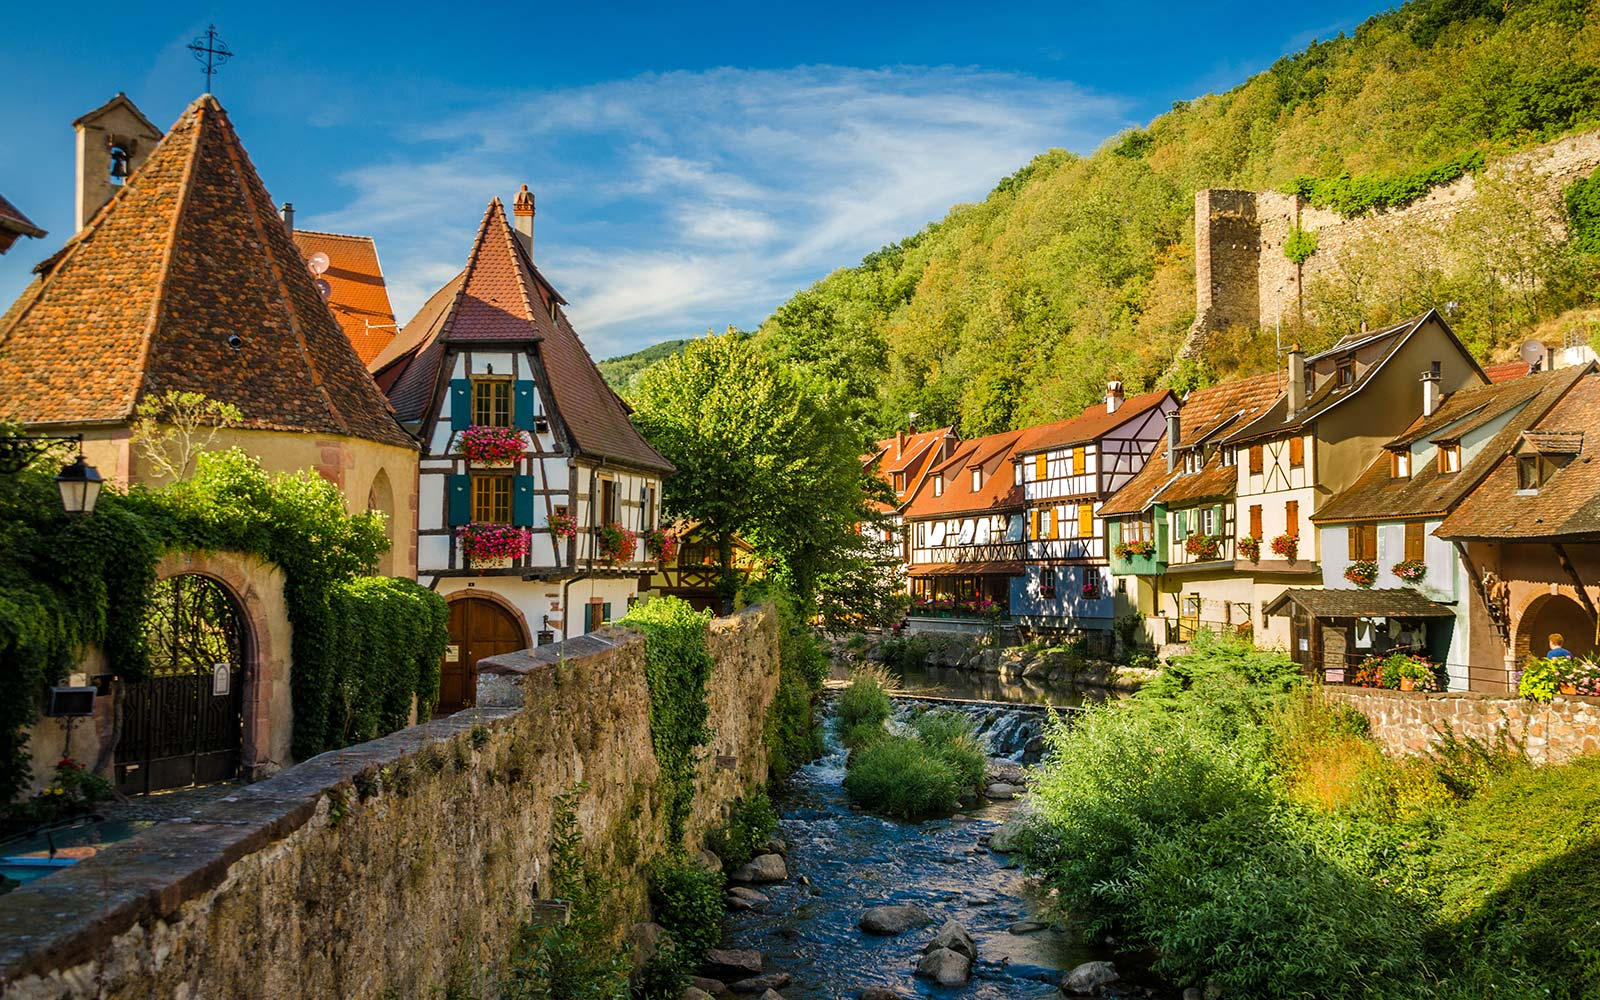 Kaysersberg is a picturesque medieval village located on the